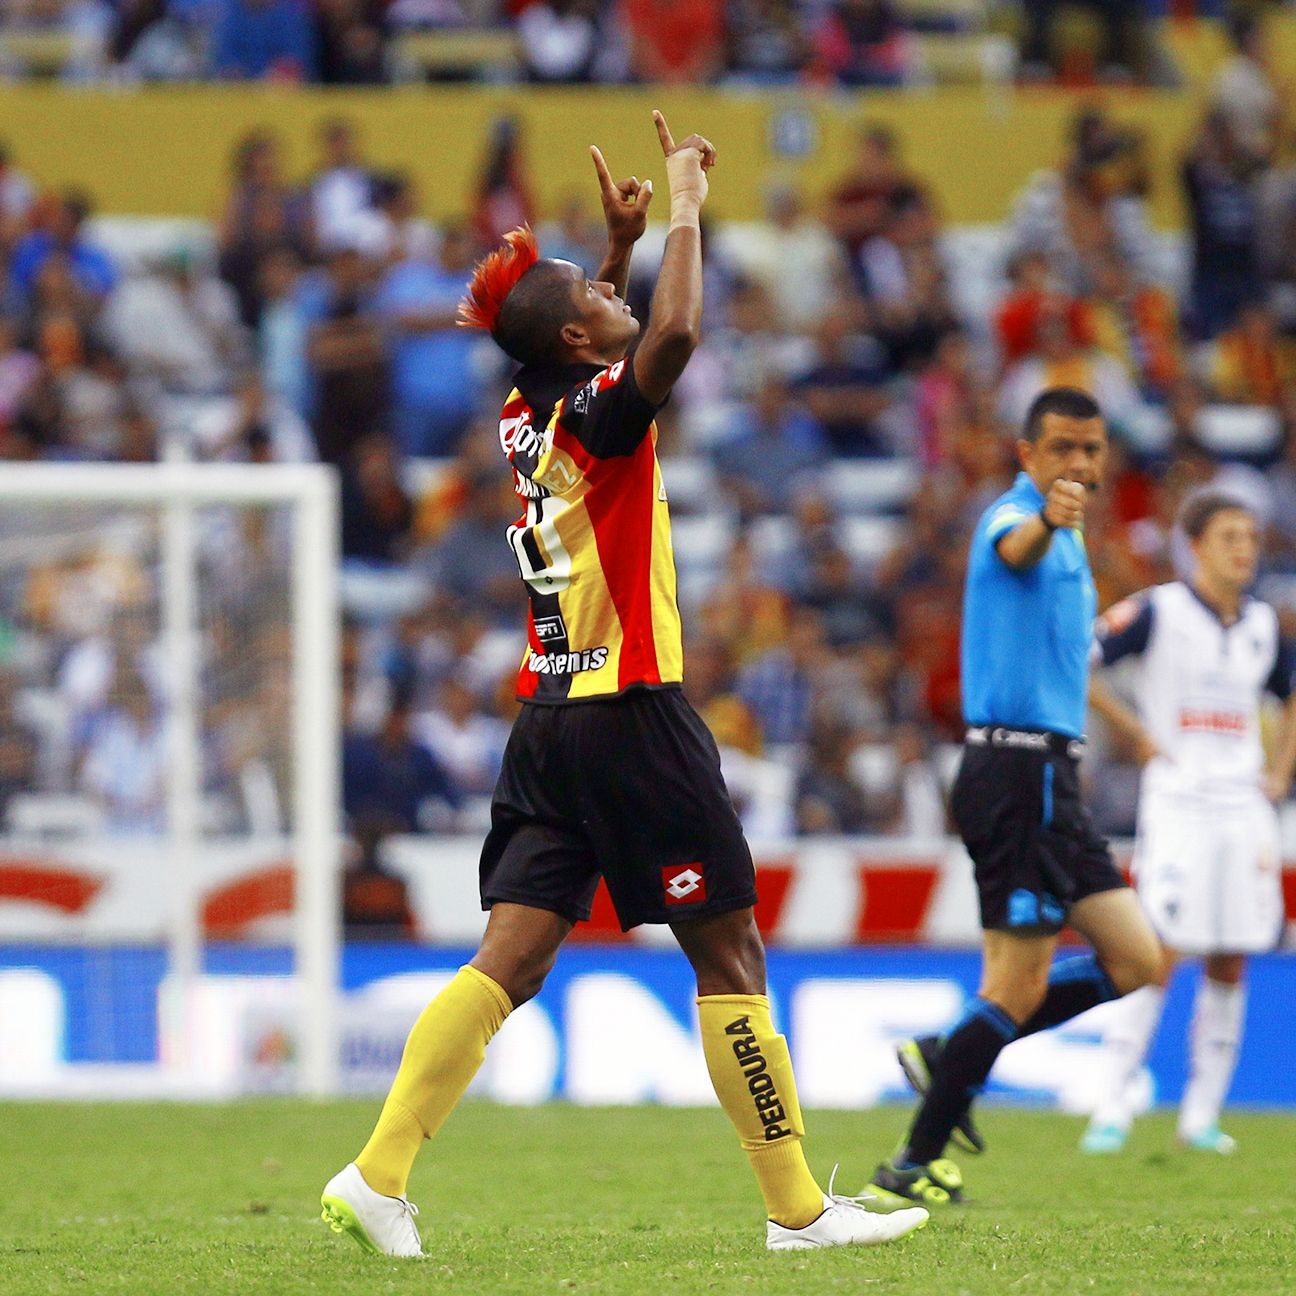 Fidel Martinez's heroics helped relegation-threatened Leones Negros to a surprising win over Monterrey in week one.